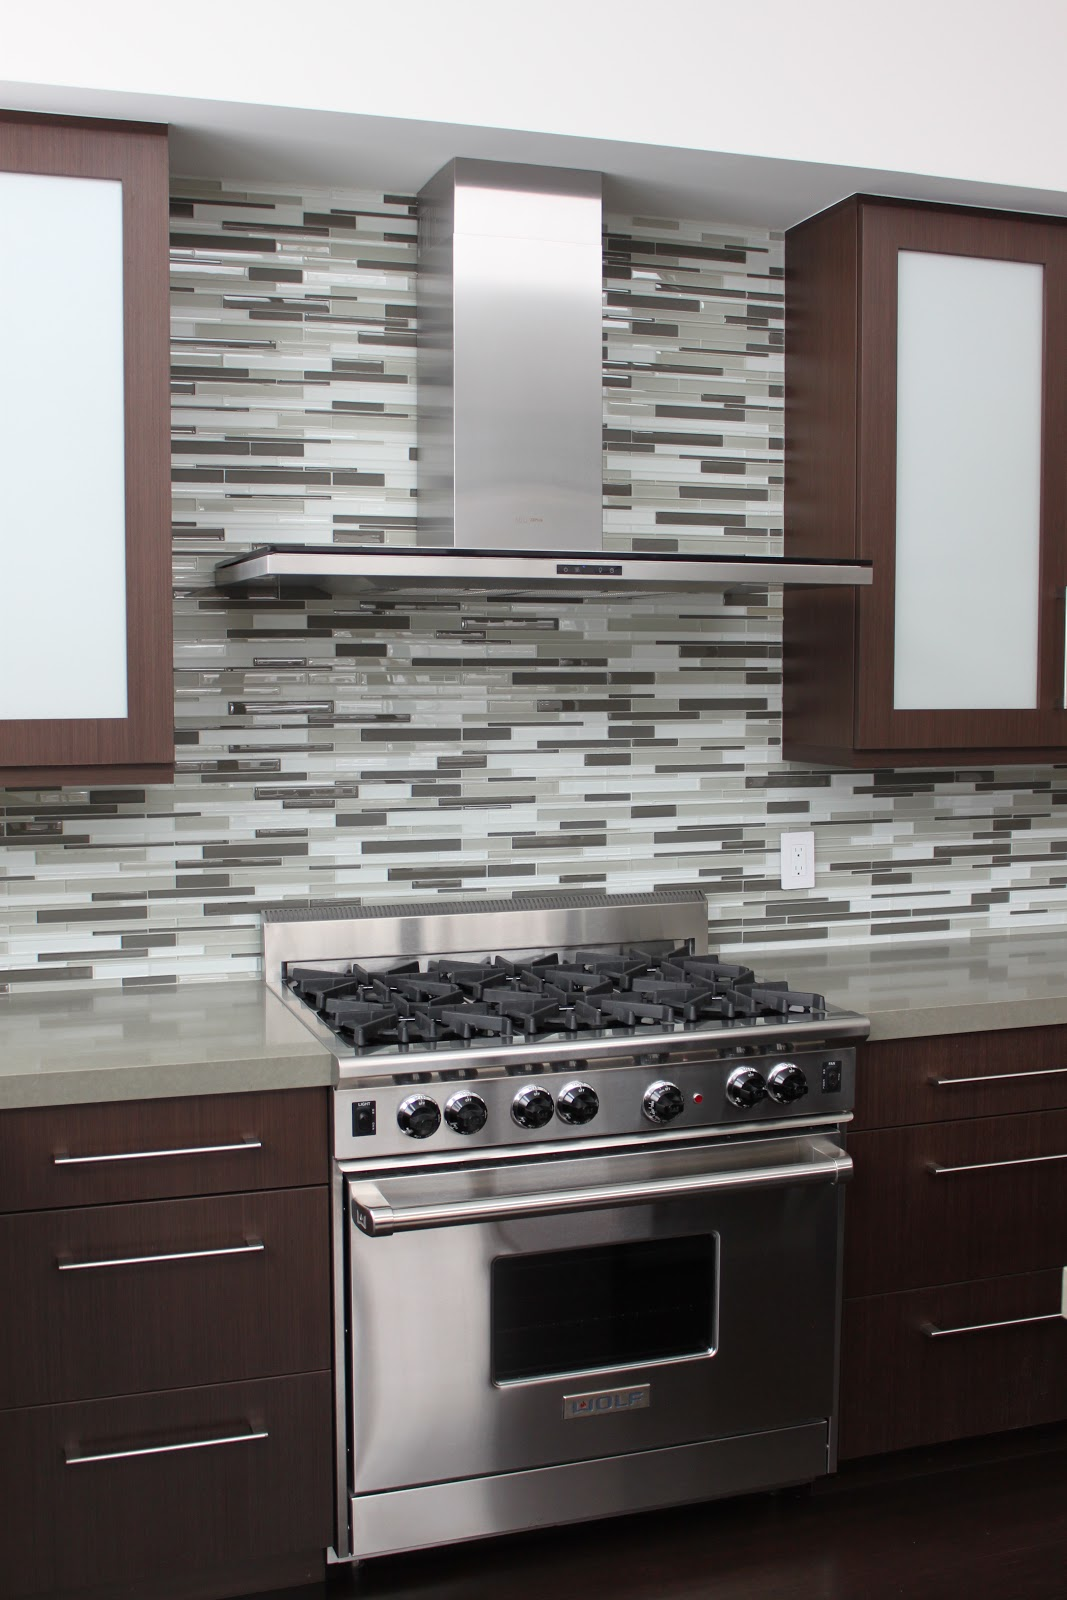 cabinets mix home elements traditional of contemporary pin a comfortable and cabinet with